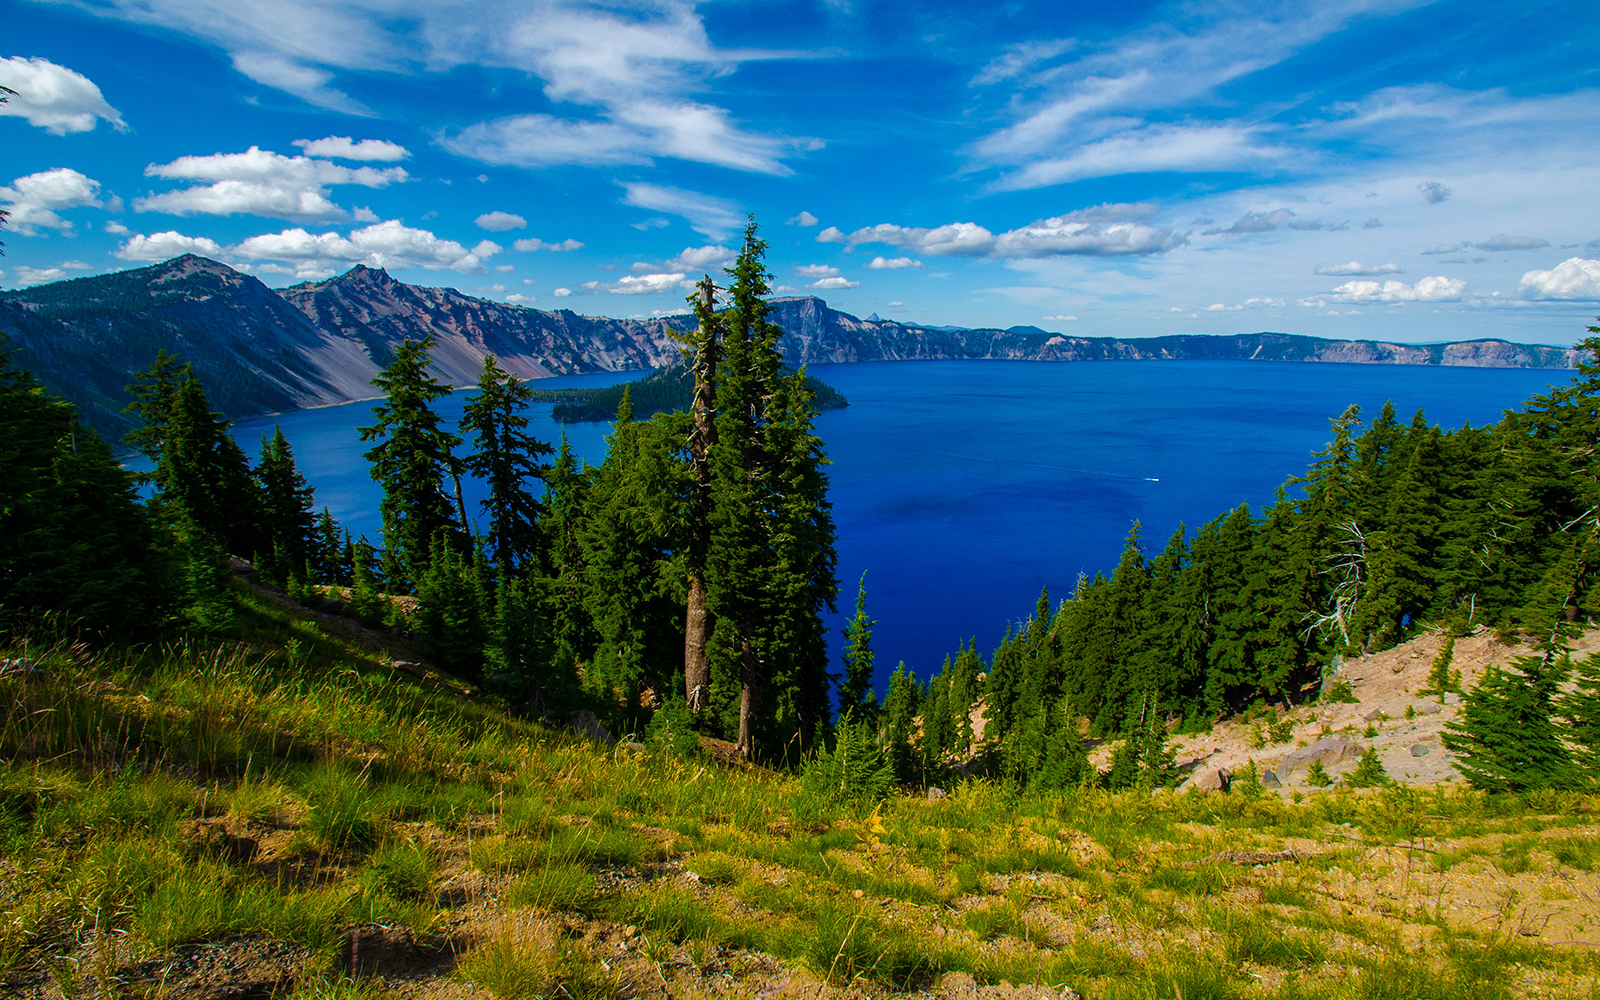 Best for Photographers: Crater Lake, Oregon